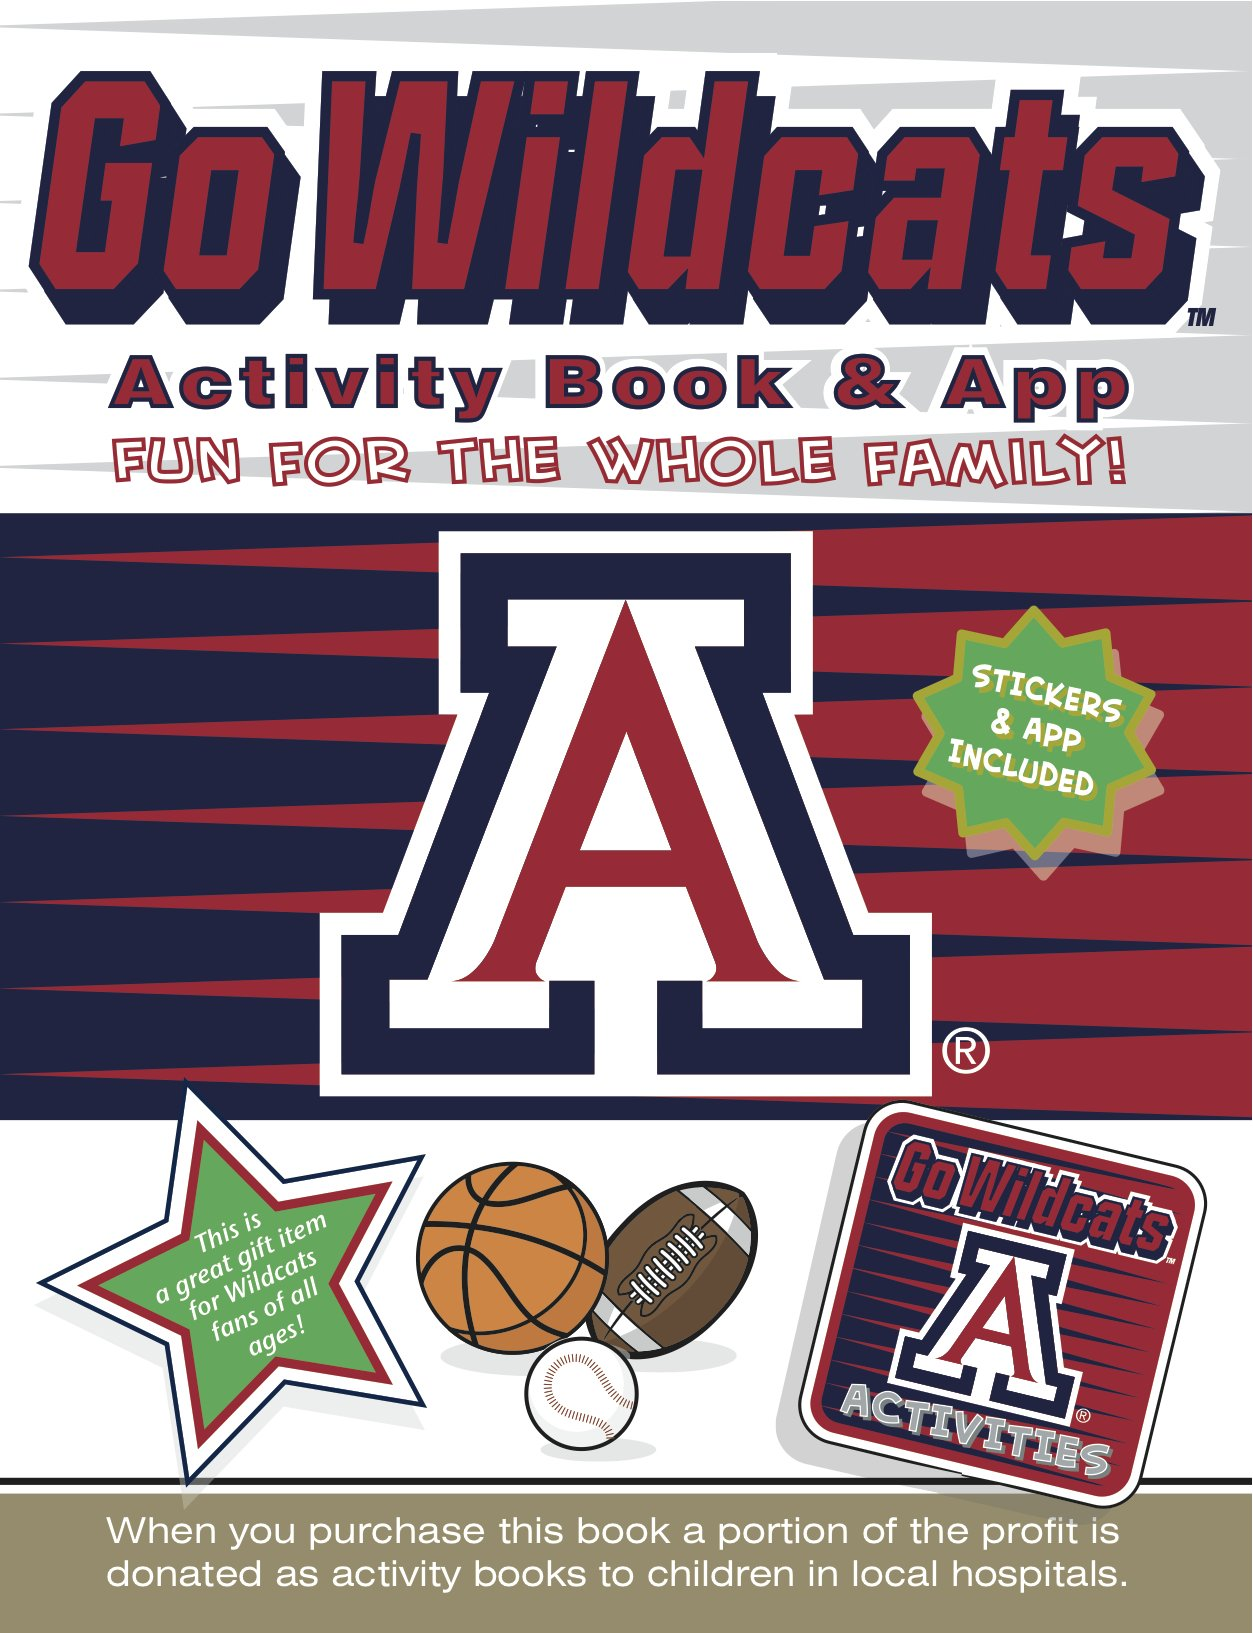 Go Wildcats Activity Book & App (Mini)